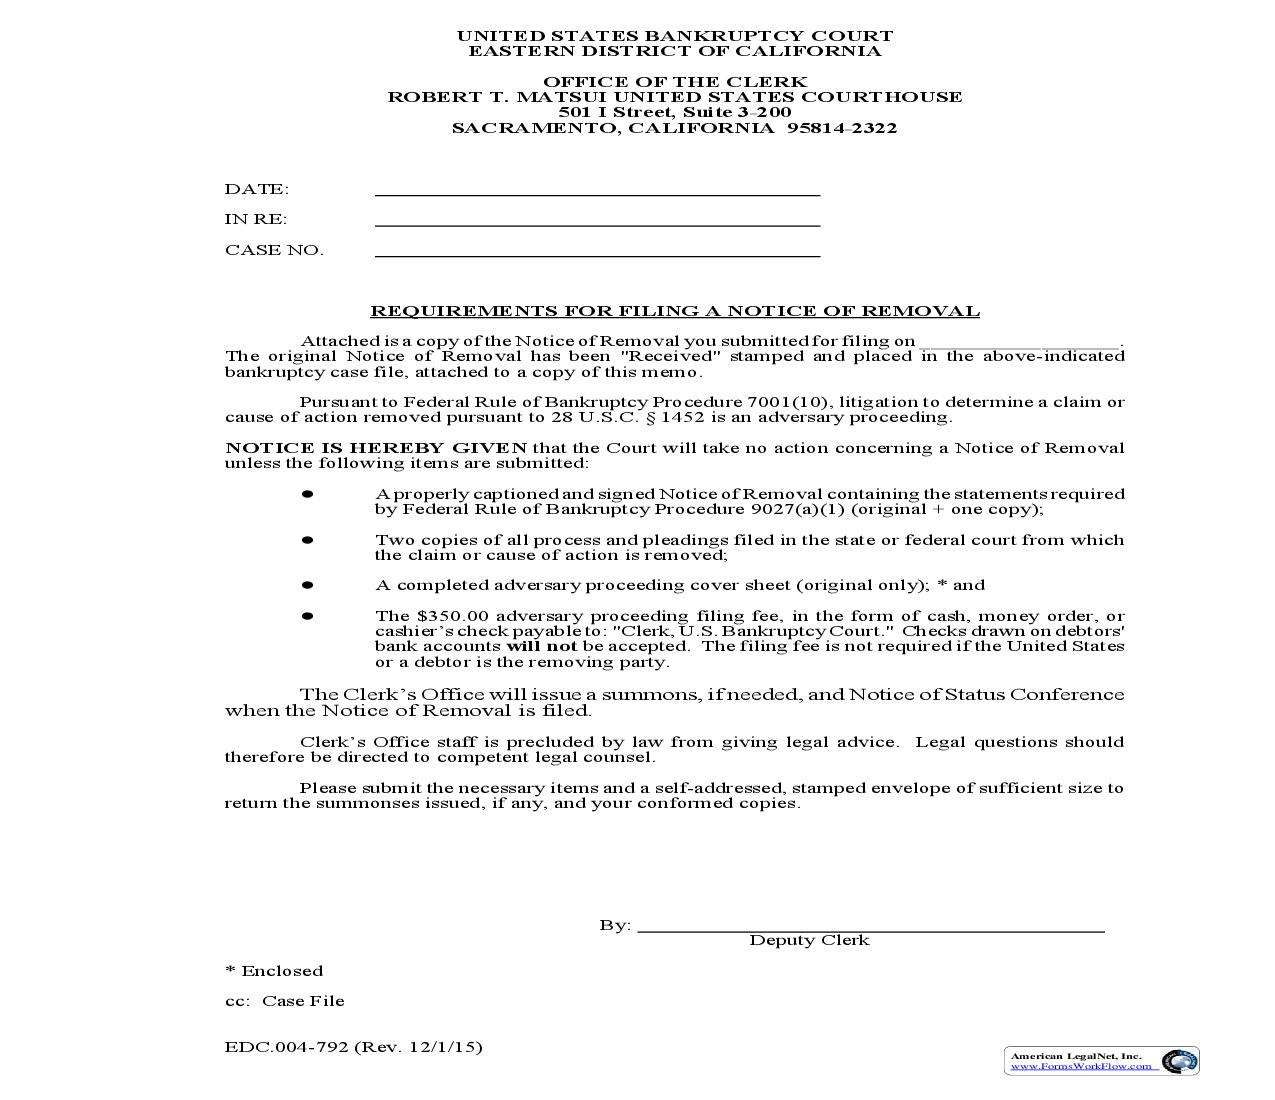 Requirements For Filing A Notice Of Removal {EDC 4-792} | Pdf Fpdf Doc Docx | California